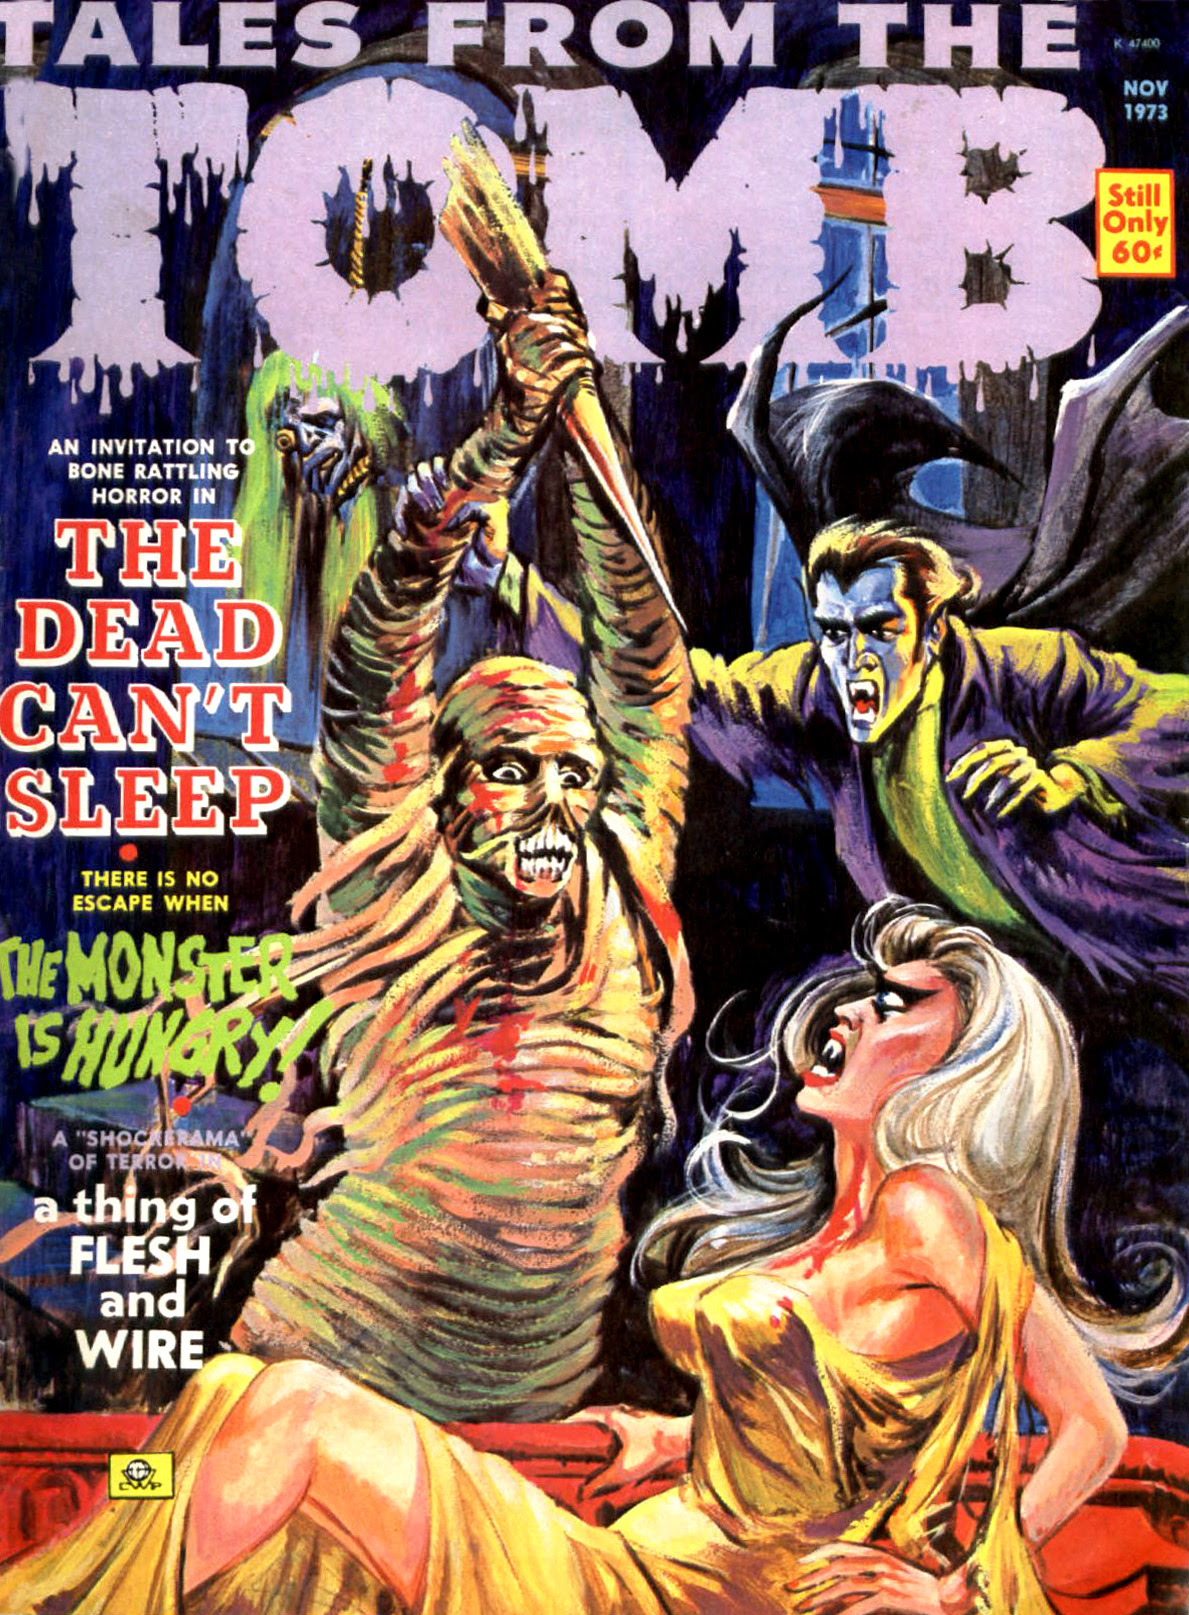 Tales from the Tomb - Vol. 5 #6 (Eerie Publications, 1973)